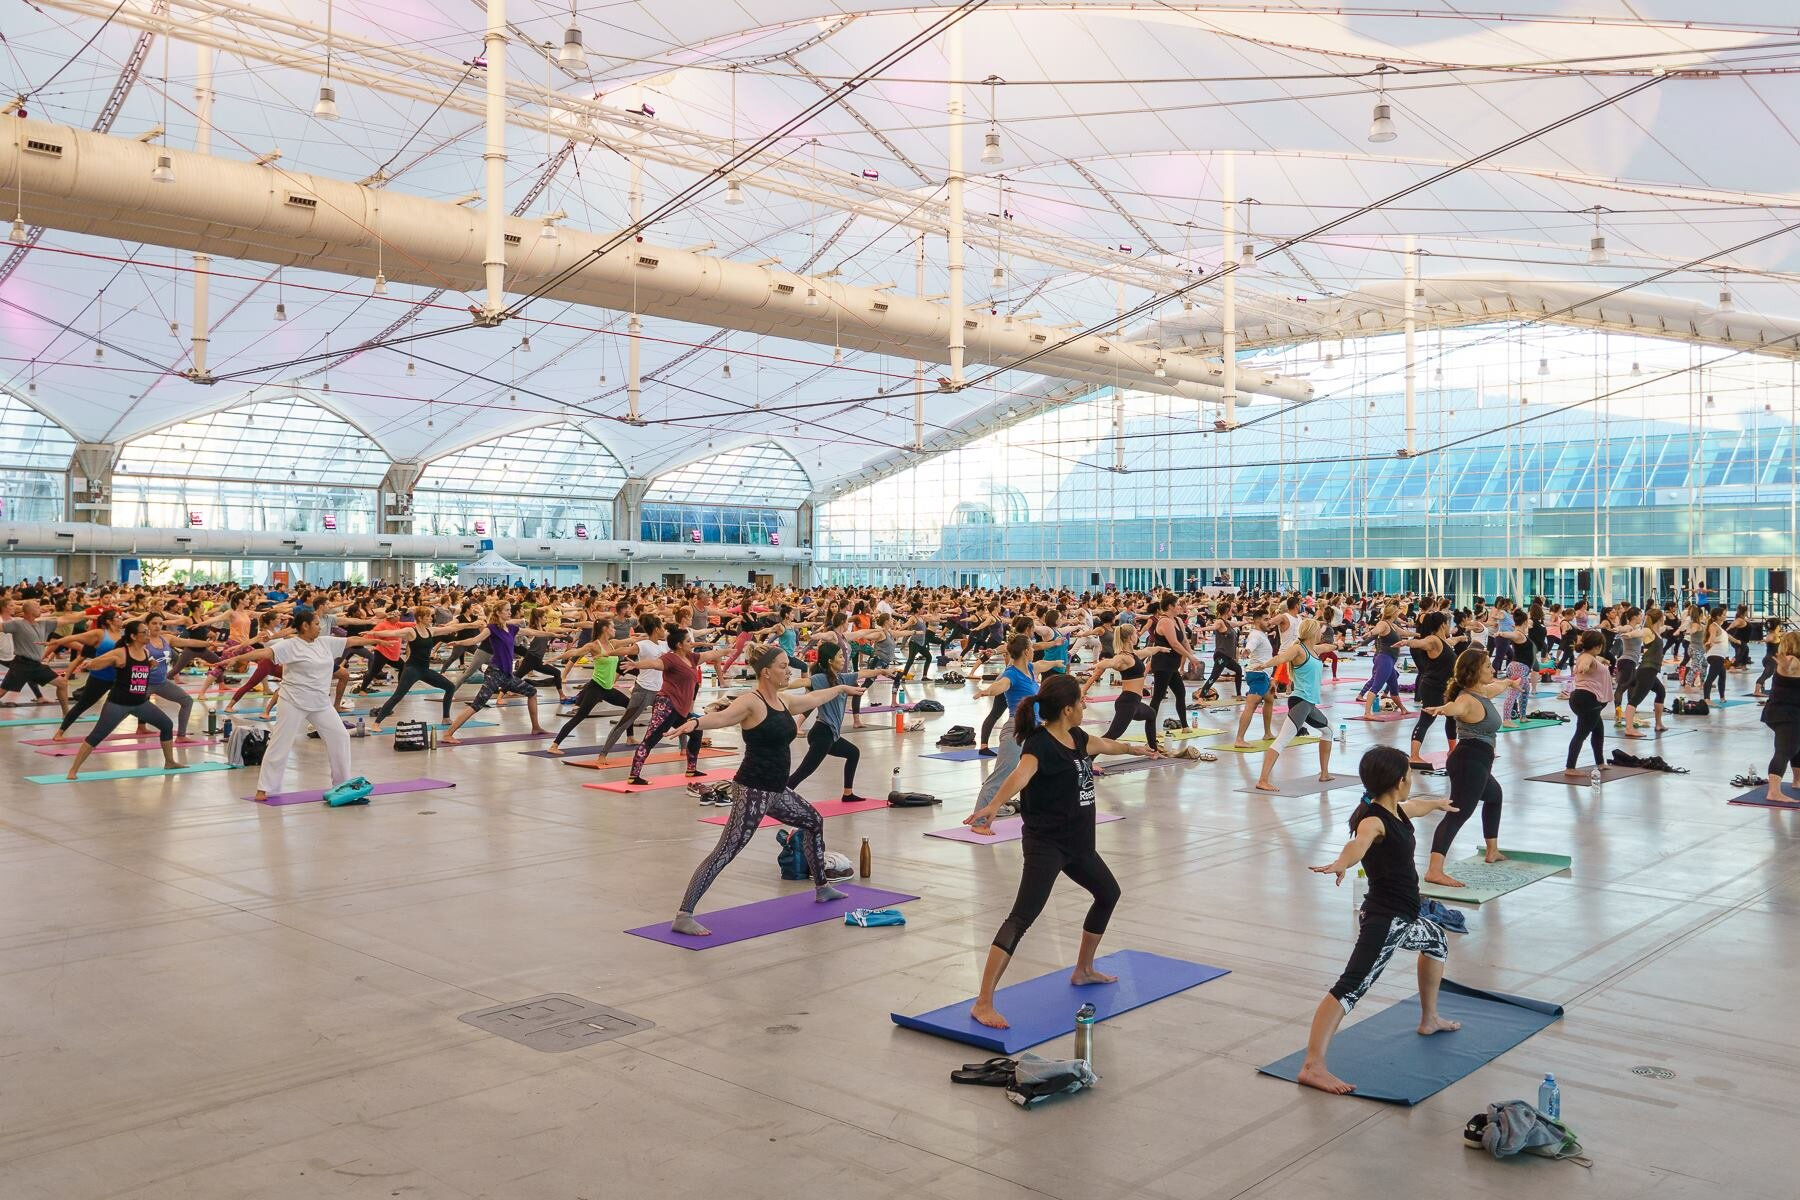 Sunset Yoga Under The Sails took place on August 29, 2018 at the San Diego Convention Center.